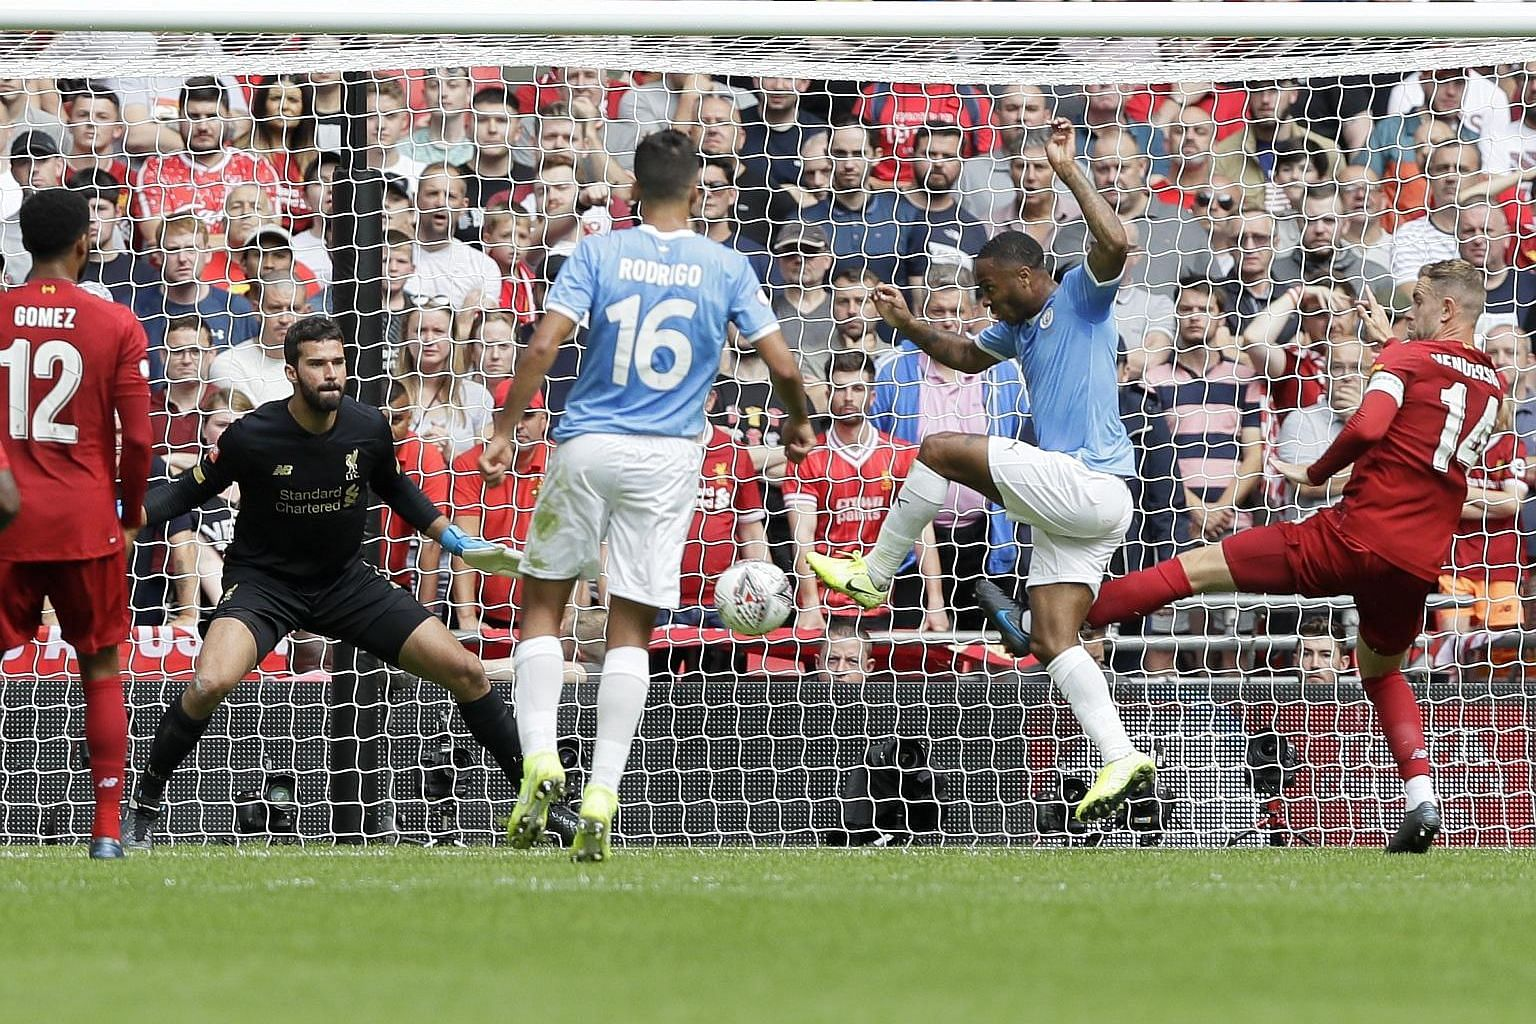 Raheem Sterling opening accounts for Manchester City against Liverpool in the English Community Shield match at Wembley yesterday. Joel Matip equalised to take the game to penalties, with City edging it 5-4.